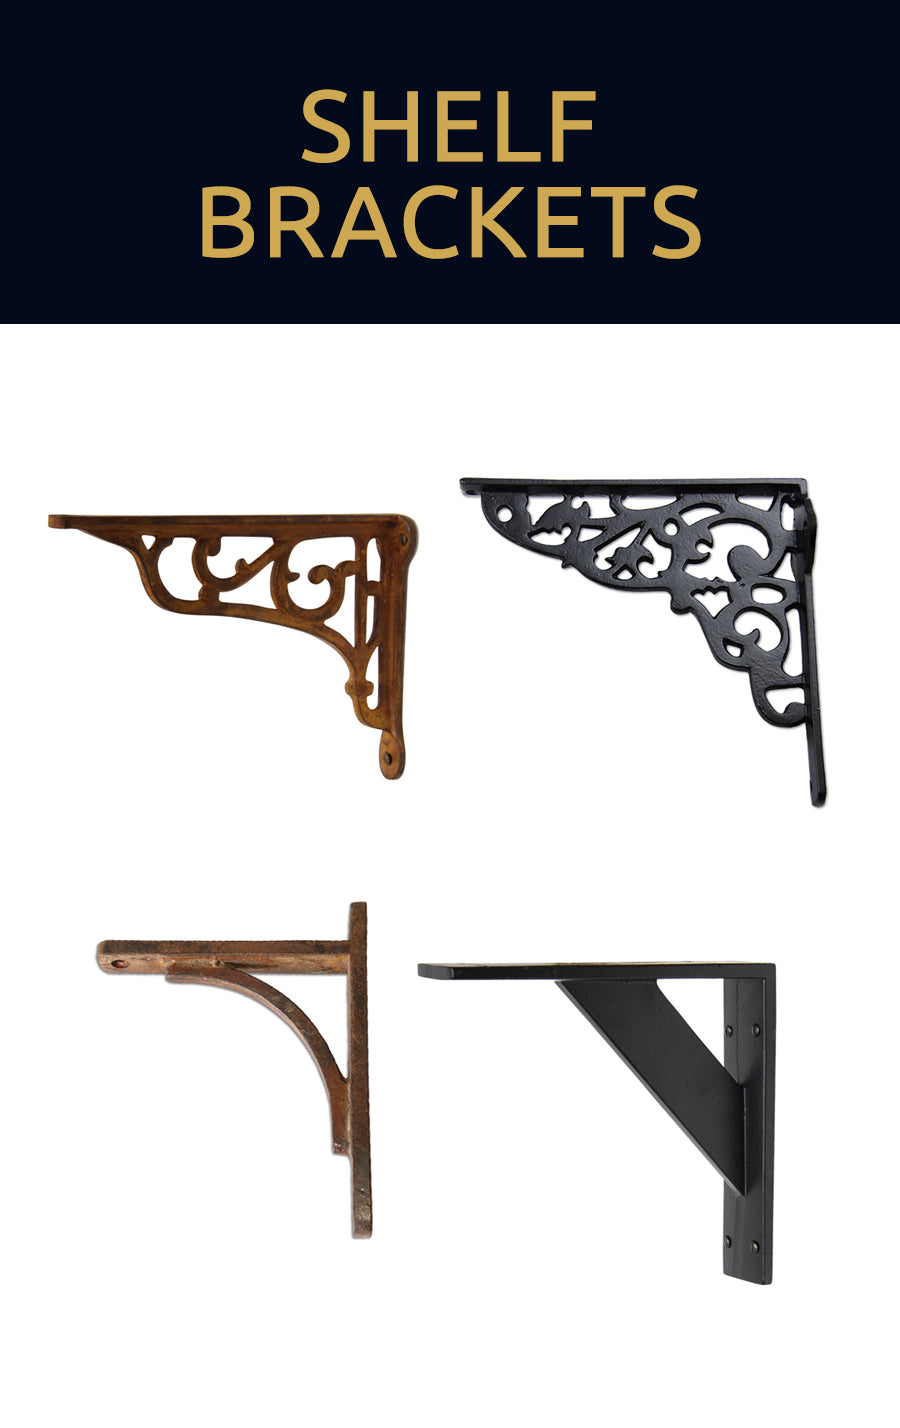 Browse our shelf brackets collection for wall shelving and shelf supports